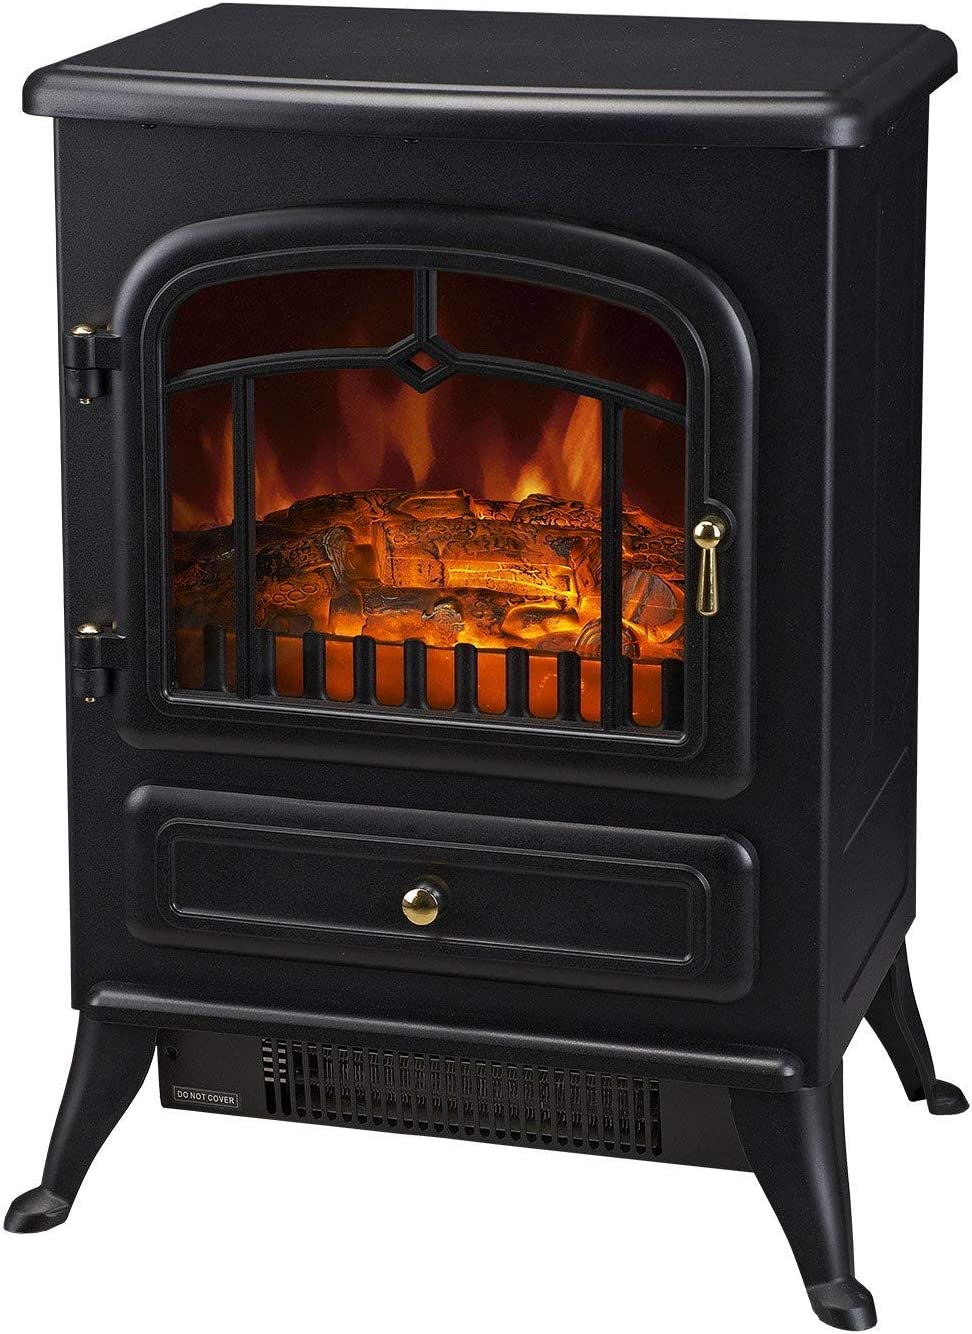 Homcom 16 Free Standing Electric Fireplace Portable Adjustable Stove With Heater Wood Burning Flame 750 1500w Black Amazon Ca Home Kitchen